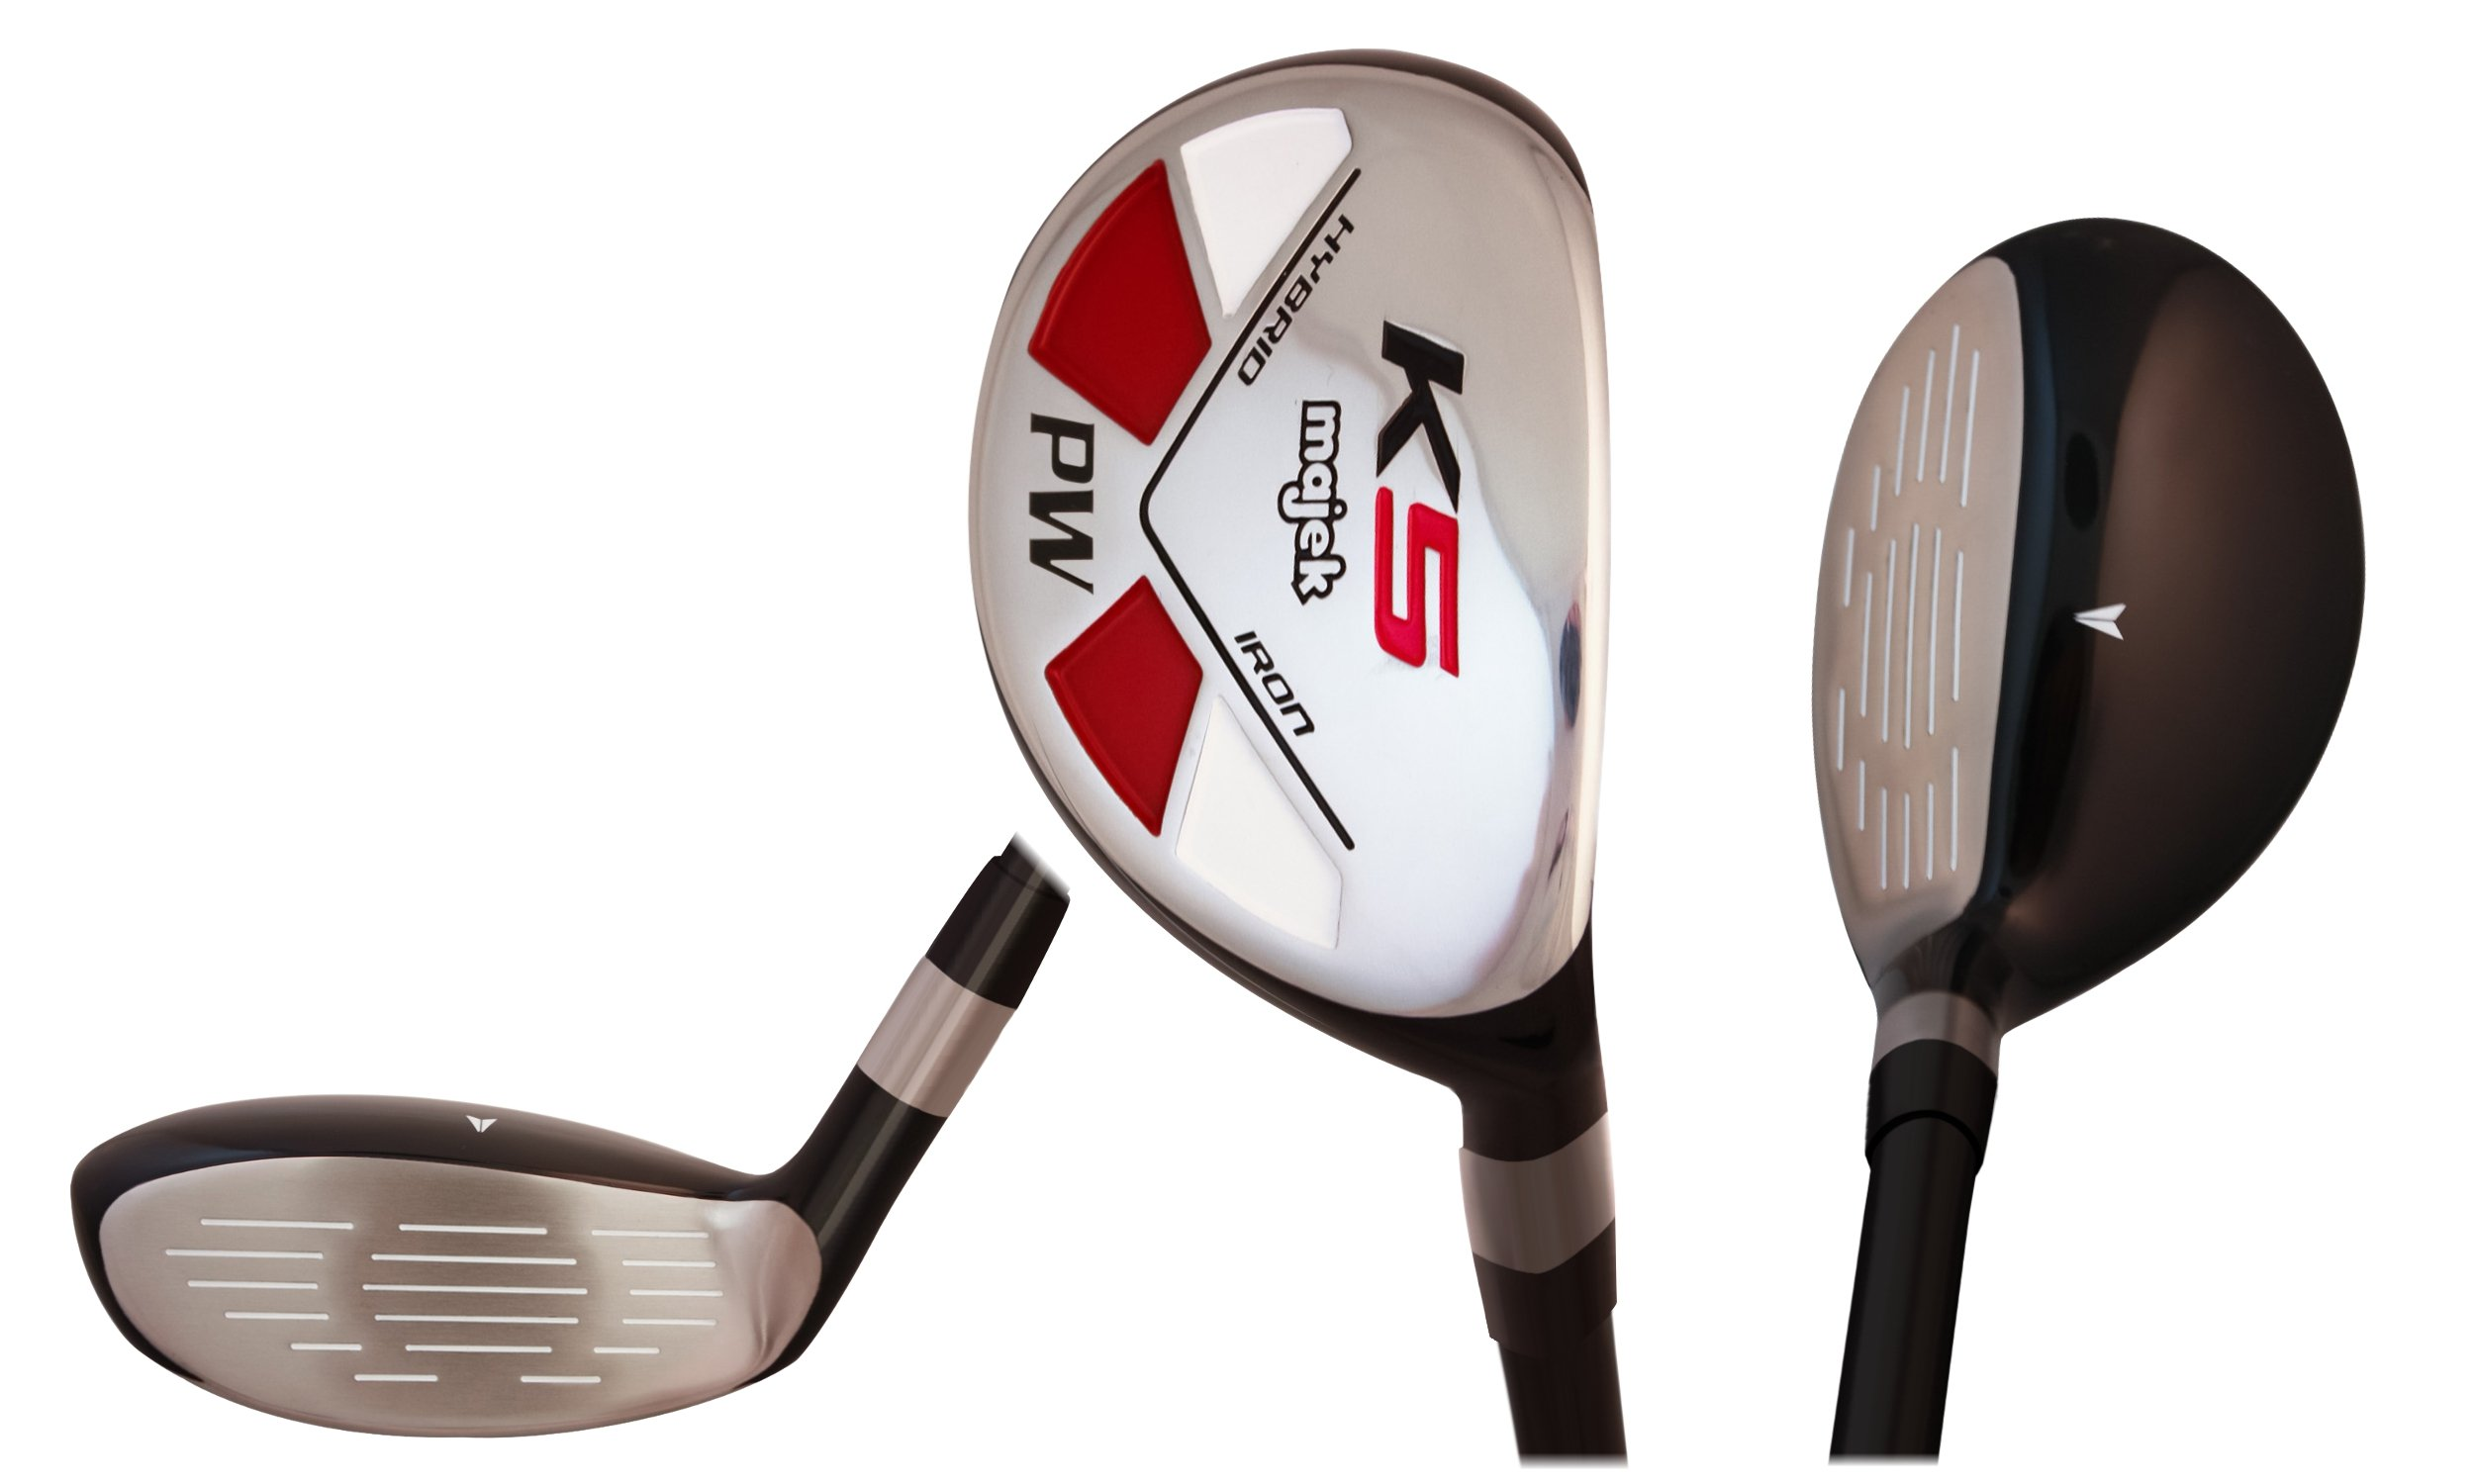 Majek Golf Petite Senior Lady PW Hybrid Lady Flex Right Handed New Rescue Utility''L'' Flex Club (Petite - 5' to 5'3'')